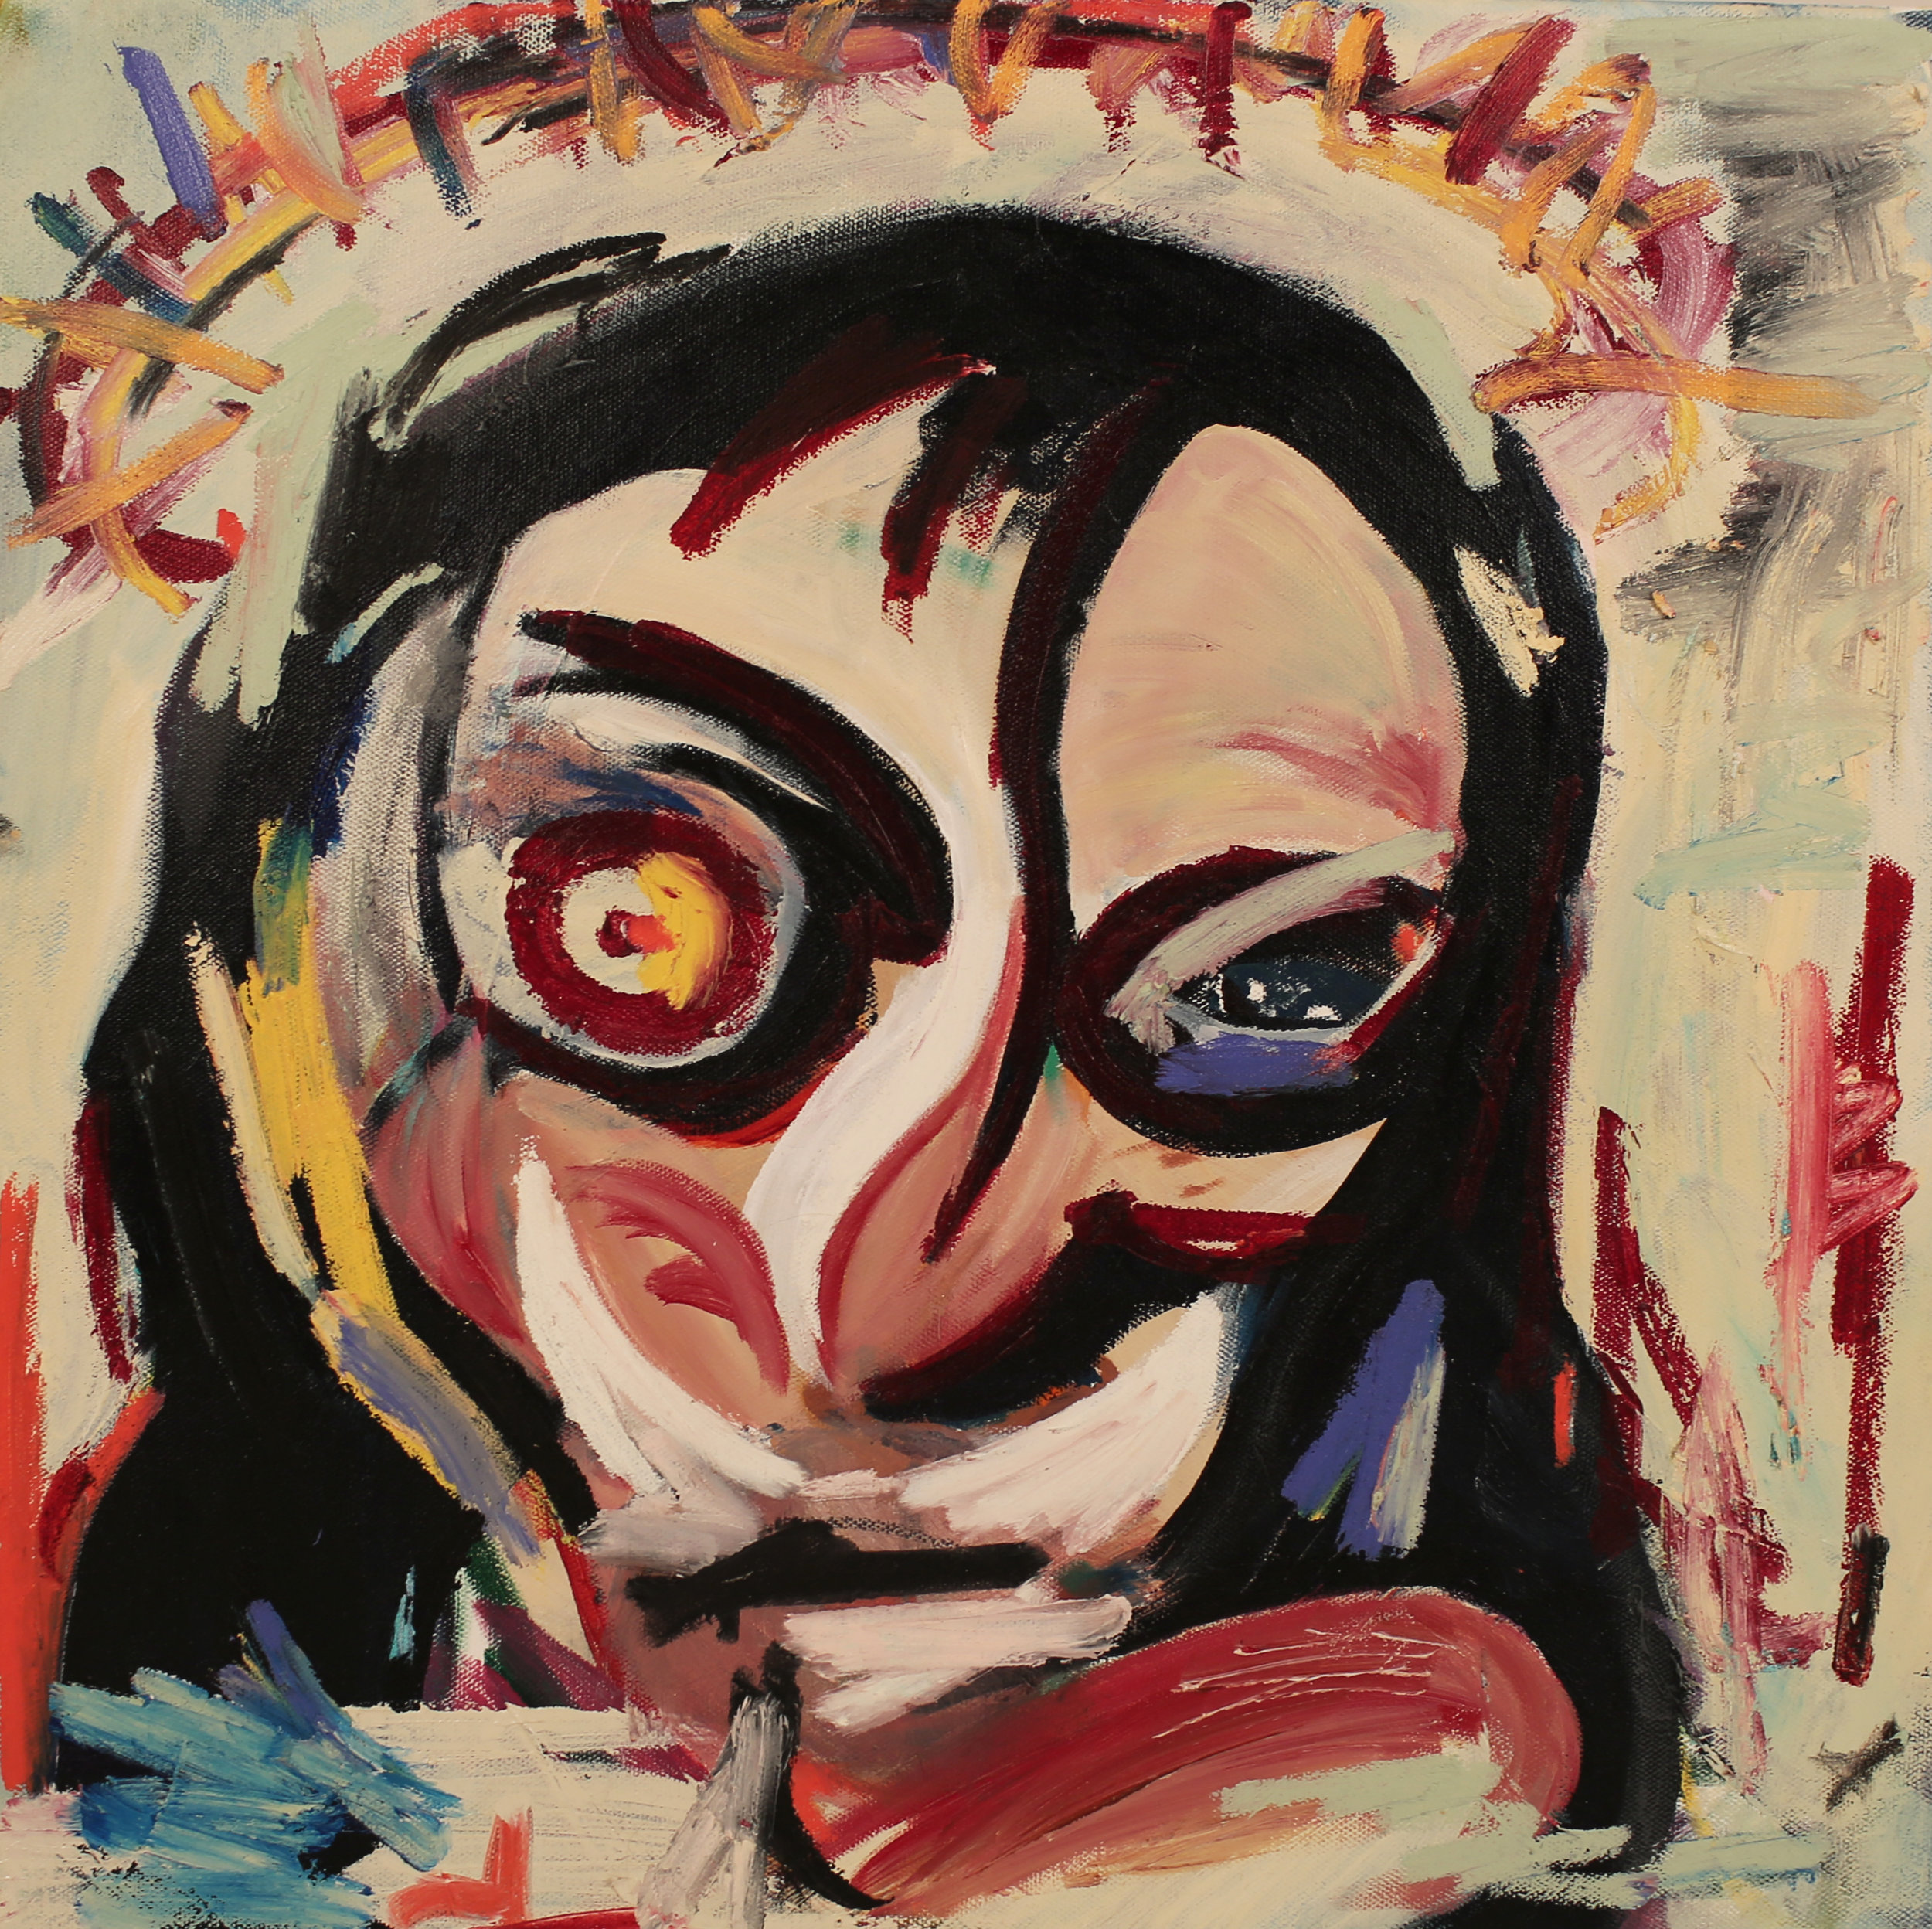 Eye behind Francis.  Oil, acrylic on canvas. 18 x 18 x 1 ½ in. Executed in 2019.